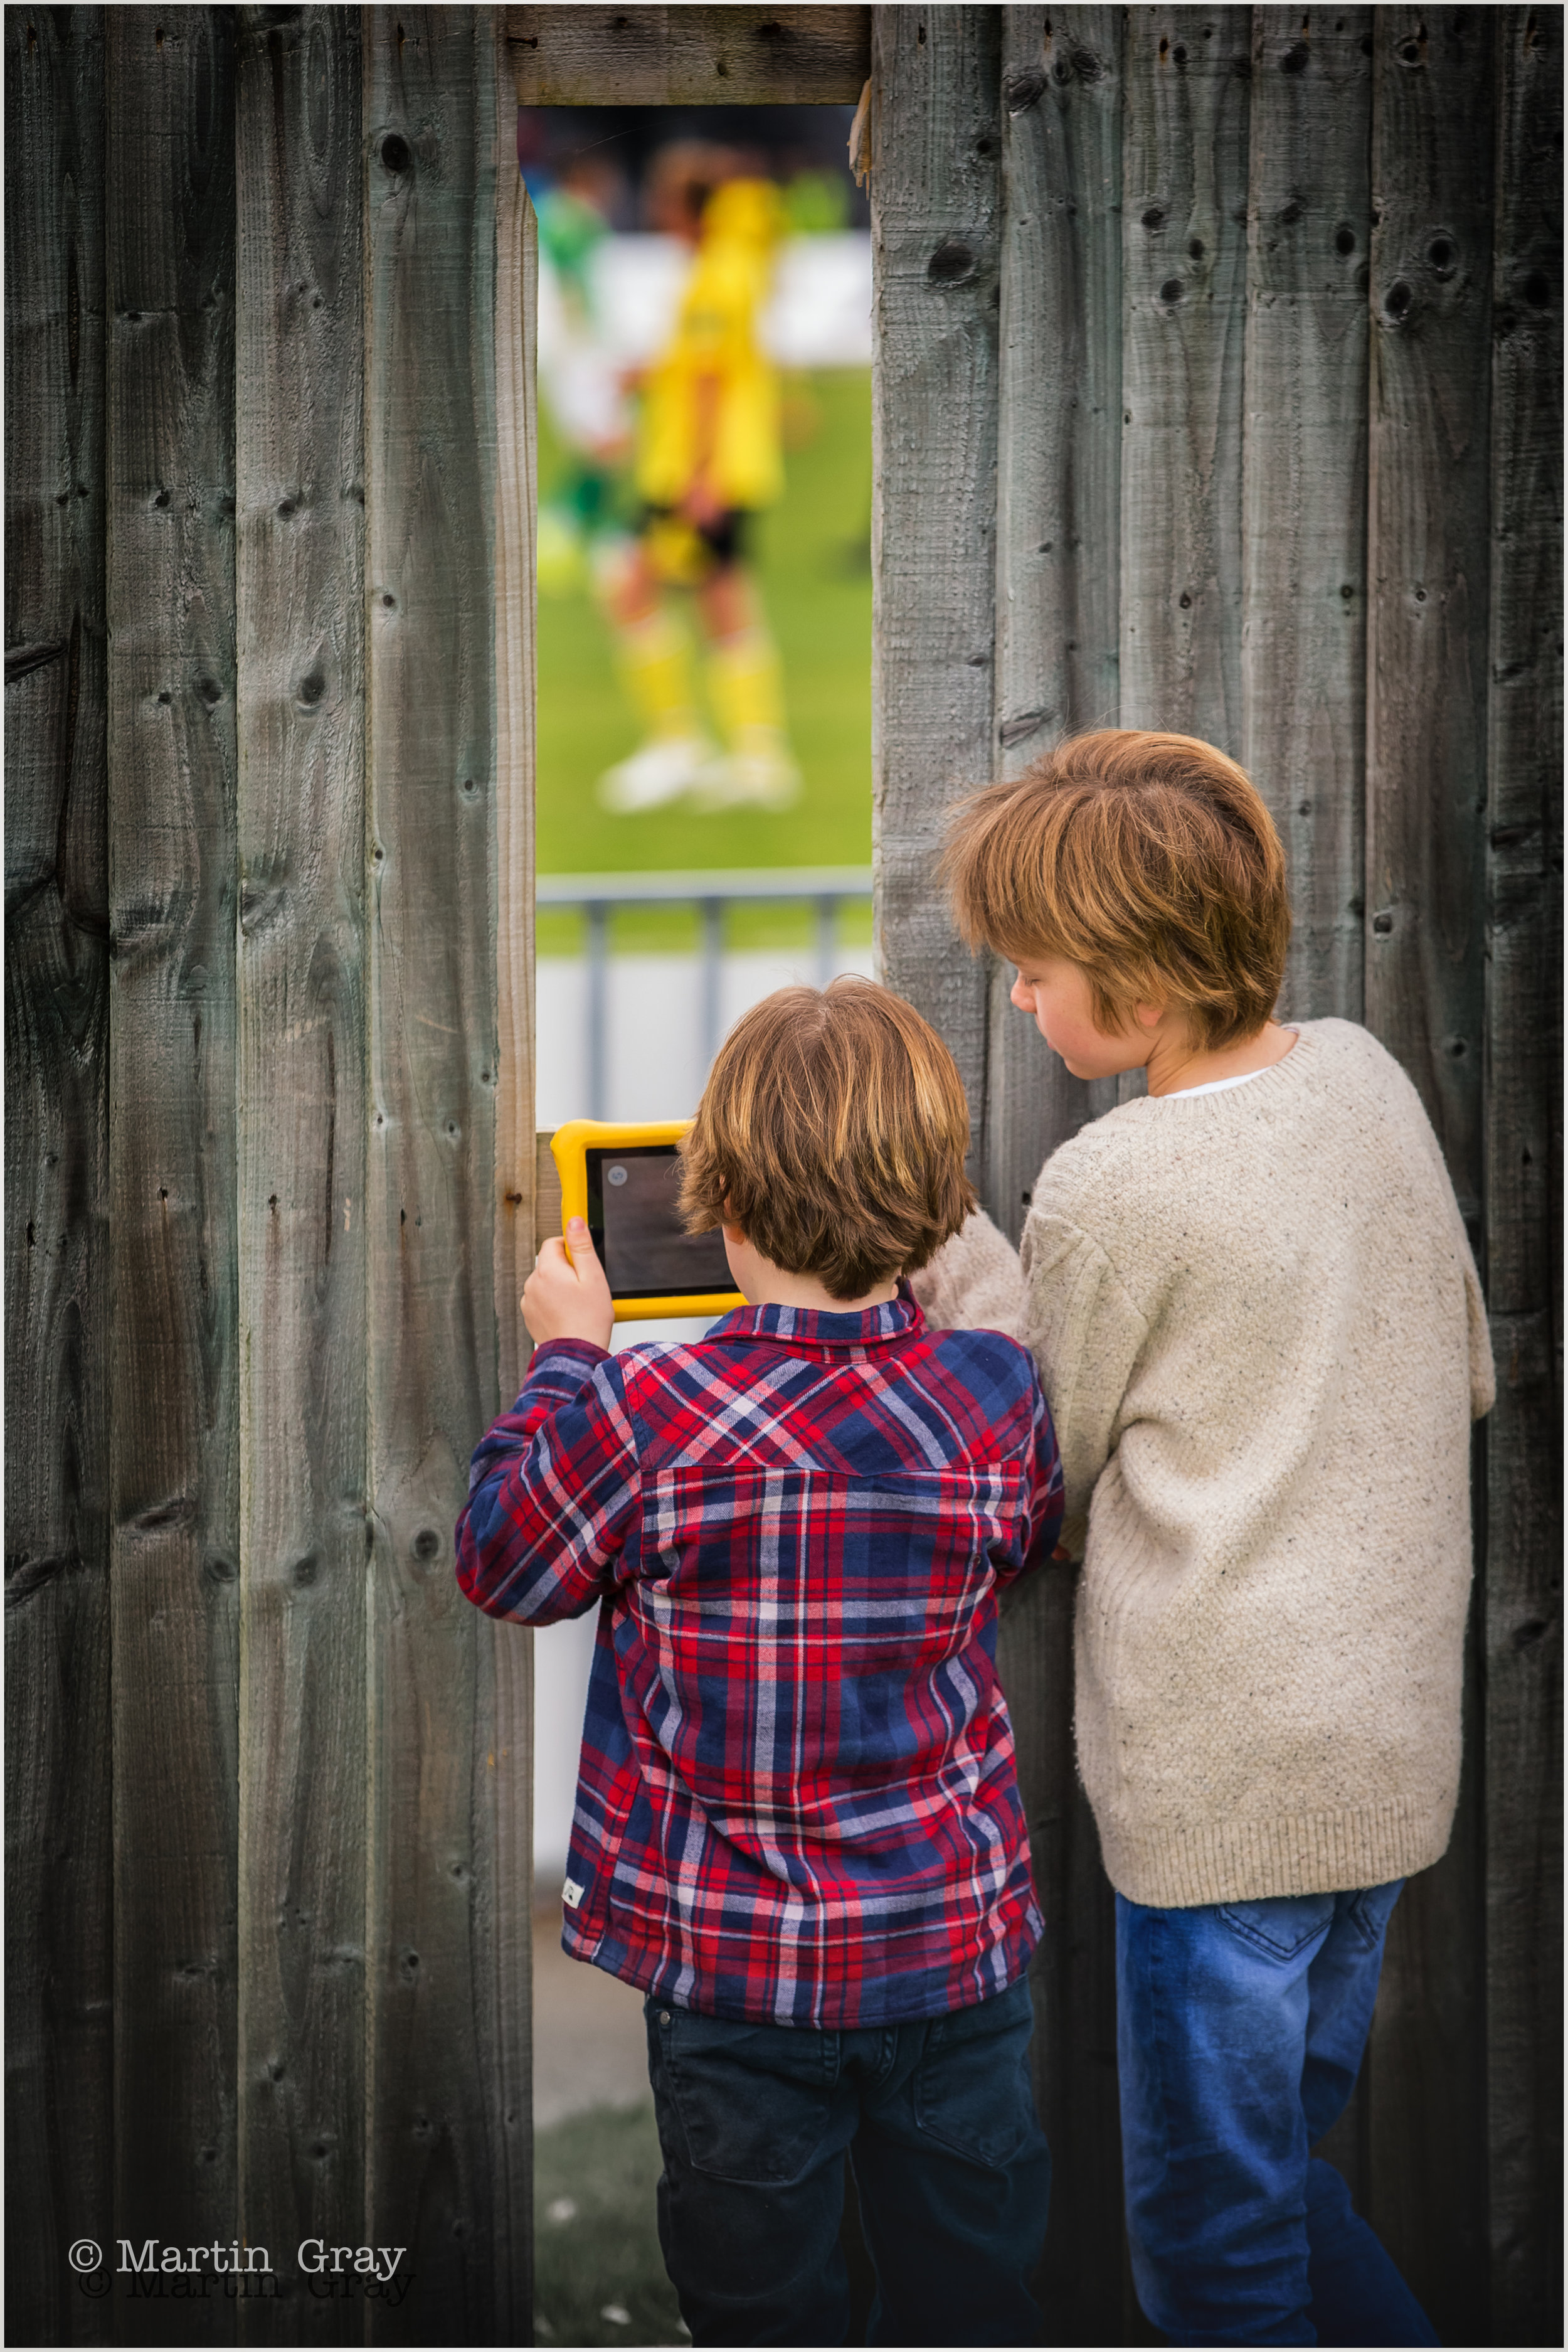 'Cheap Seats'… Two lads find a gap in the fence to watch and photograph a Guernsey FC game…